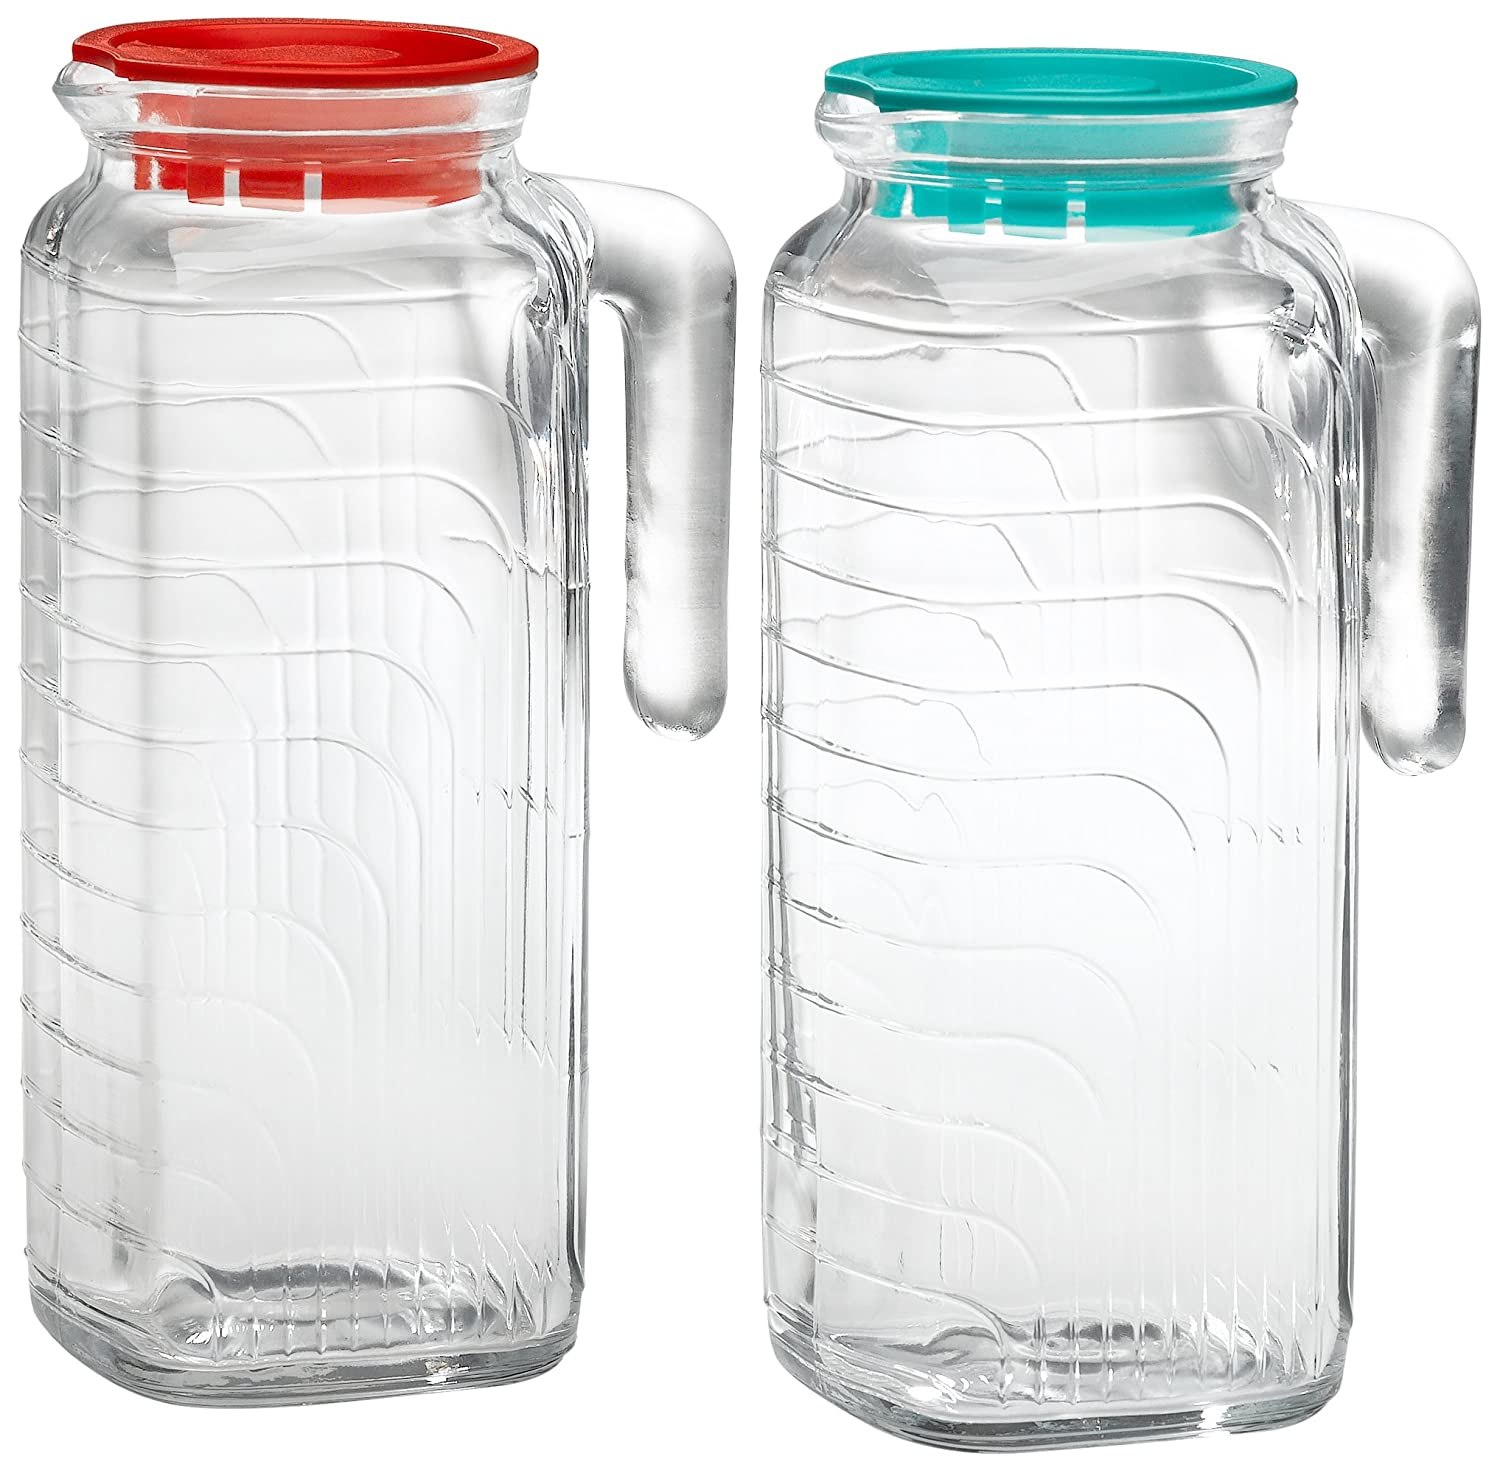 amazoncom  bormioli rocco gelo piece glass pitcher set with  - amazoncom  bormioli rocco gelo piece glass pitcher set with lids redand green  liter carafes  pitchers